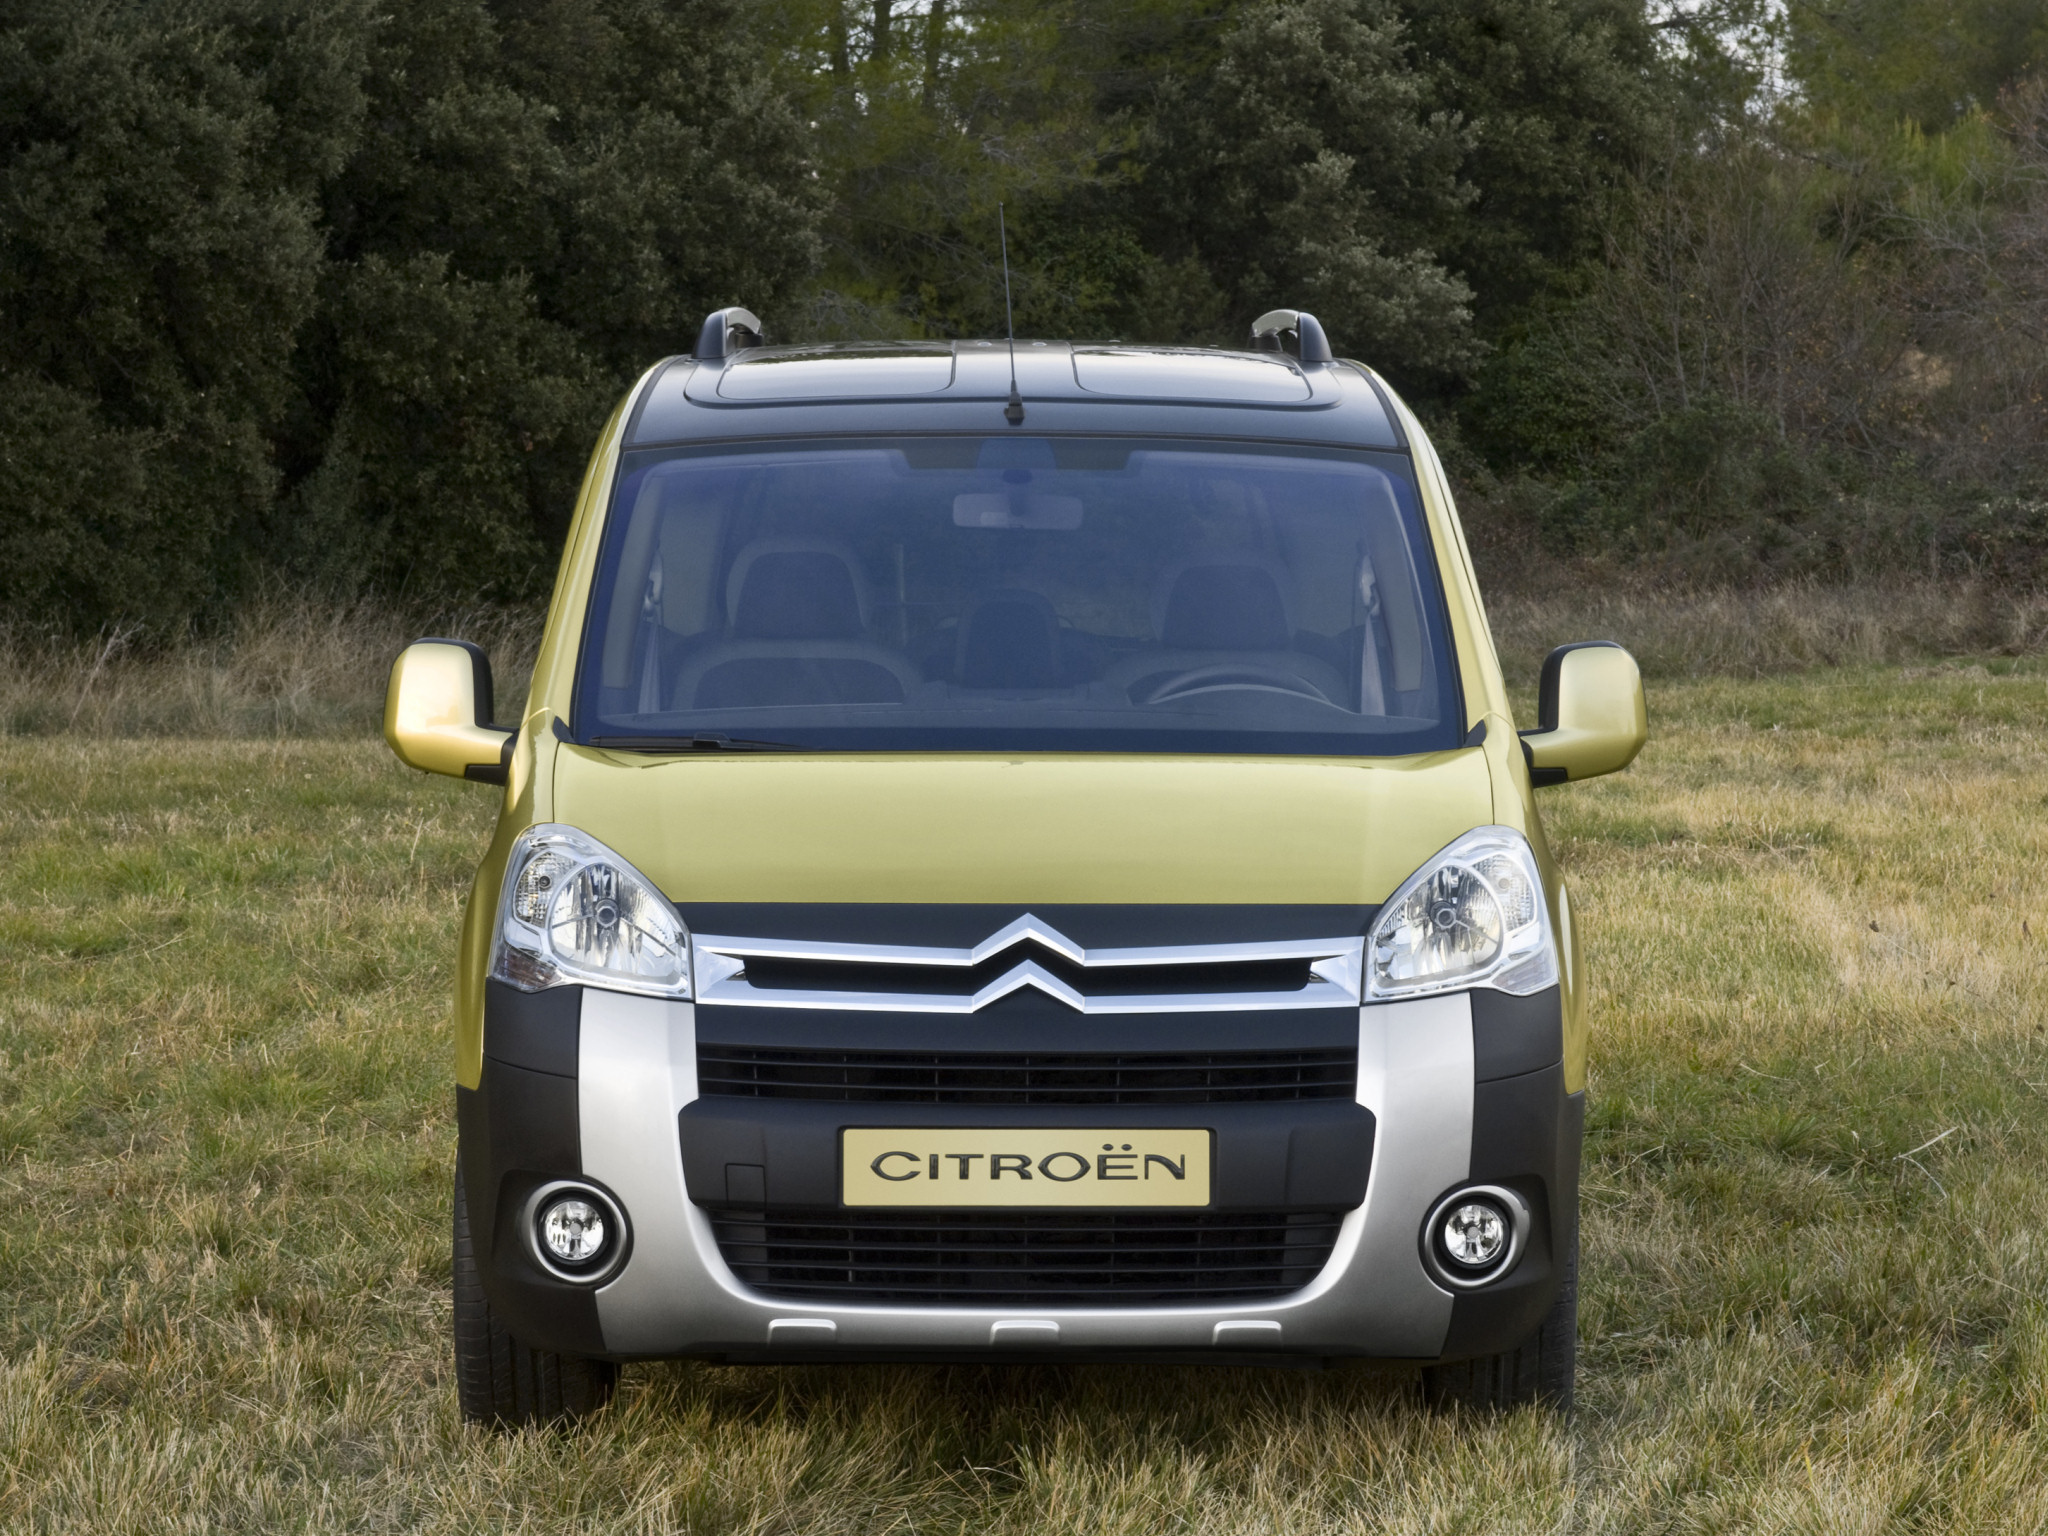 citroen berlingo xtr 2008 citroen berlingo xtr 2008 photo 07 car in pictures car photo gallery. Black Bedroom Furniture Sets. Home Design Ideas